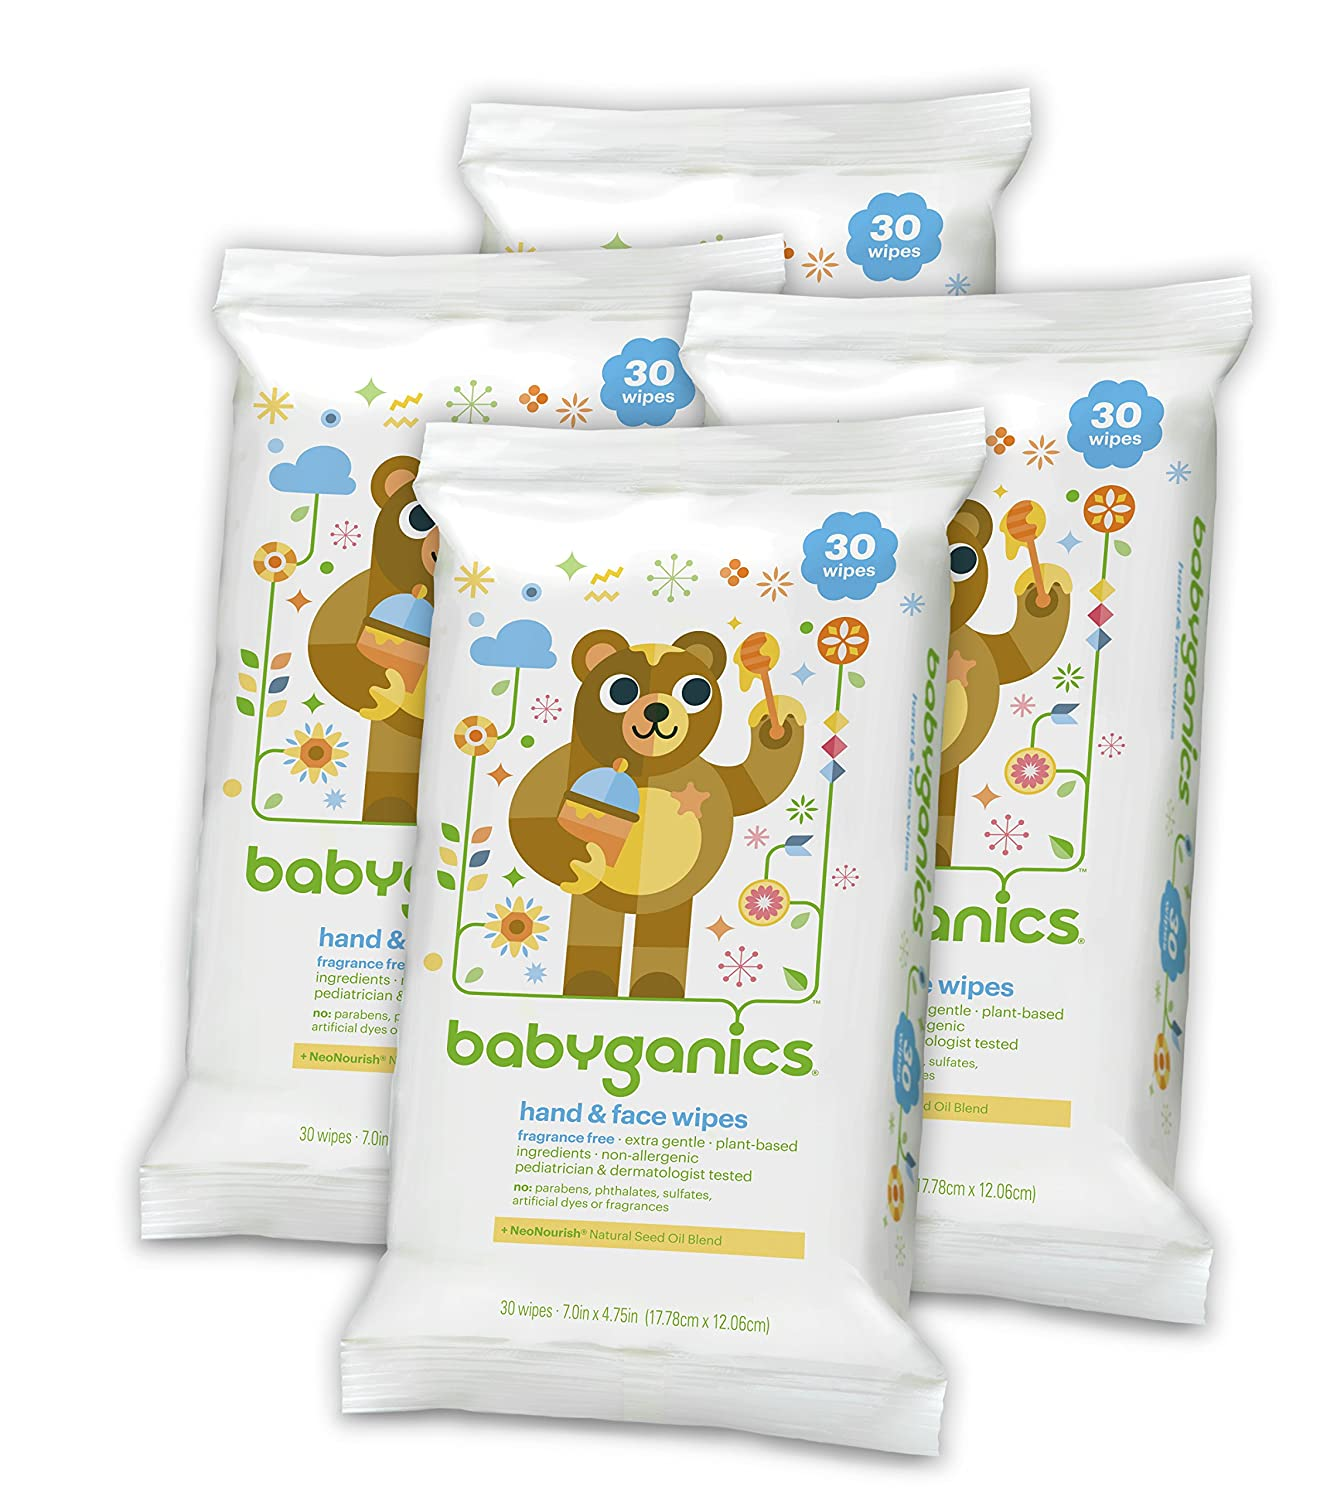 Babyganics Hand & Face Wipes, Fragrance Free, 30 Count (Pack of 4, 120 Total Wipes)